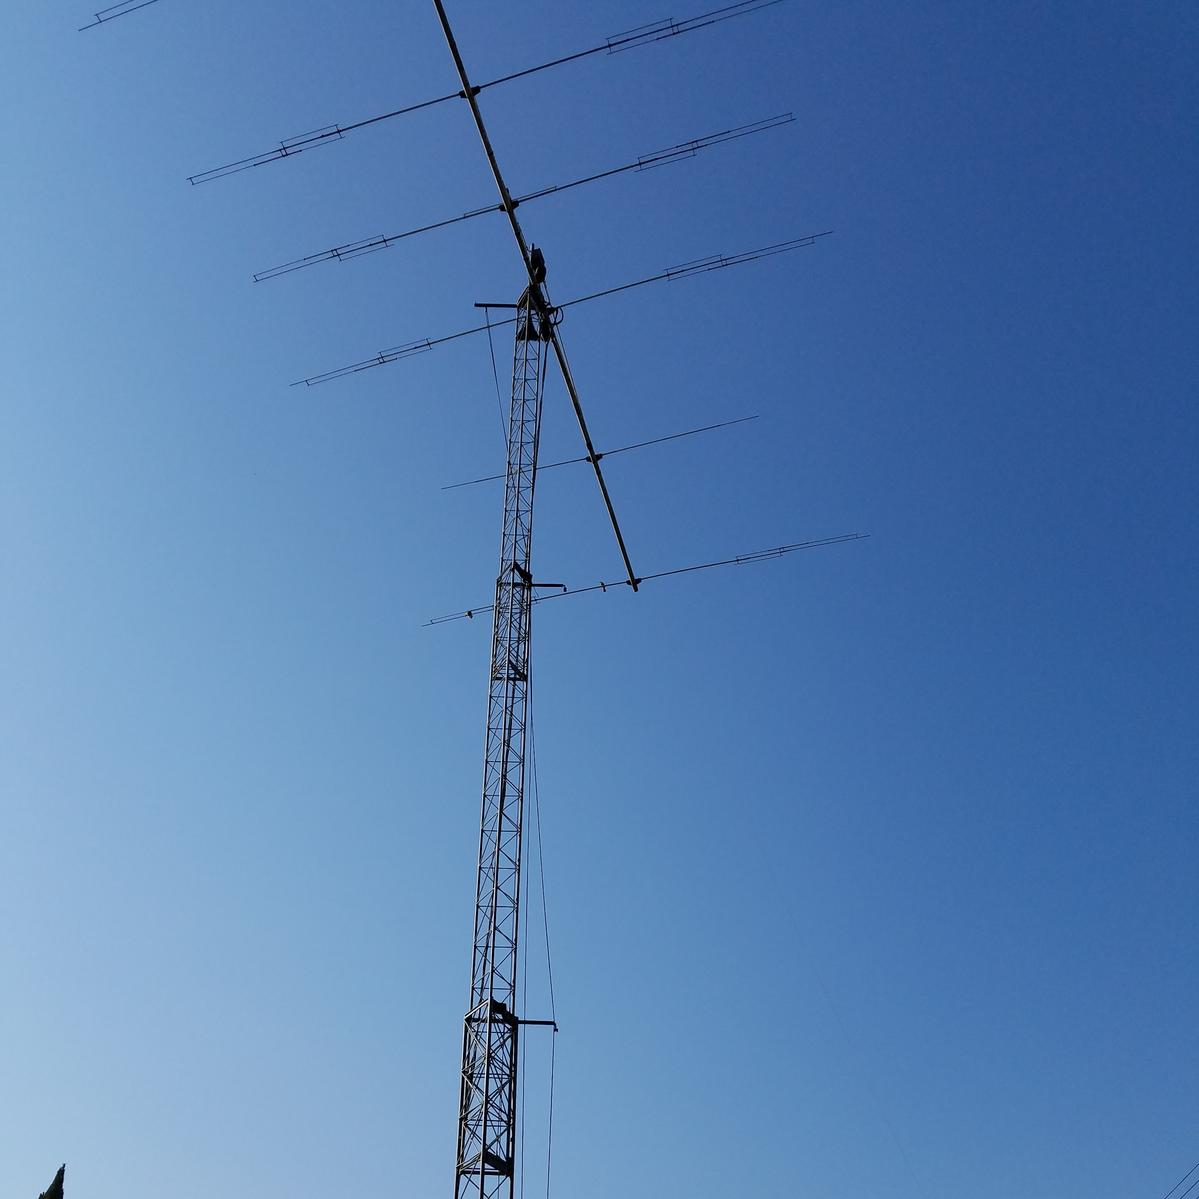 M2 KT-36XA, boom loaded for 40m, and 75/80 sloper on TX-455 Tower